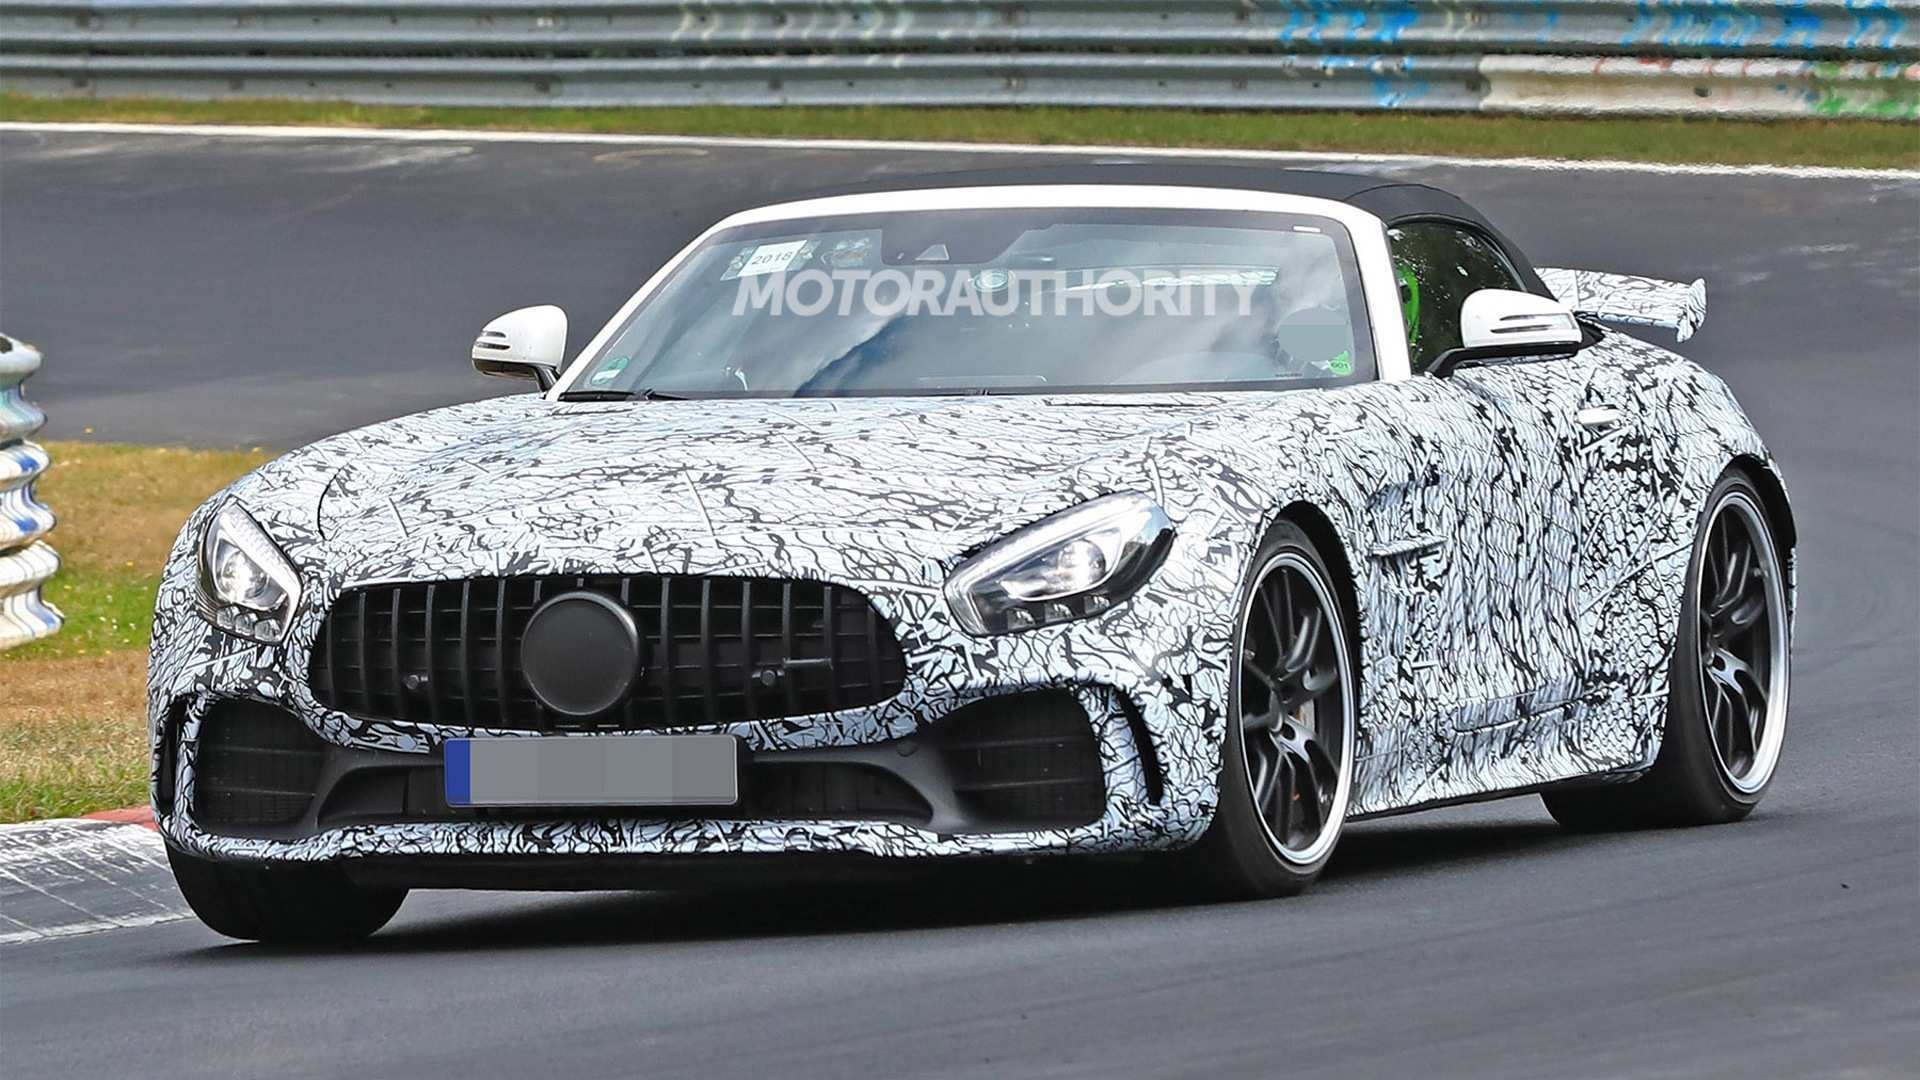 44 All New Mercedes 2020 Amg Gt Exterior with Mercedes 2020 Amg Gt